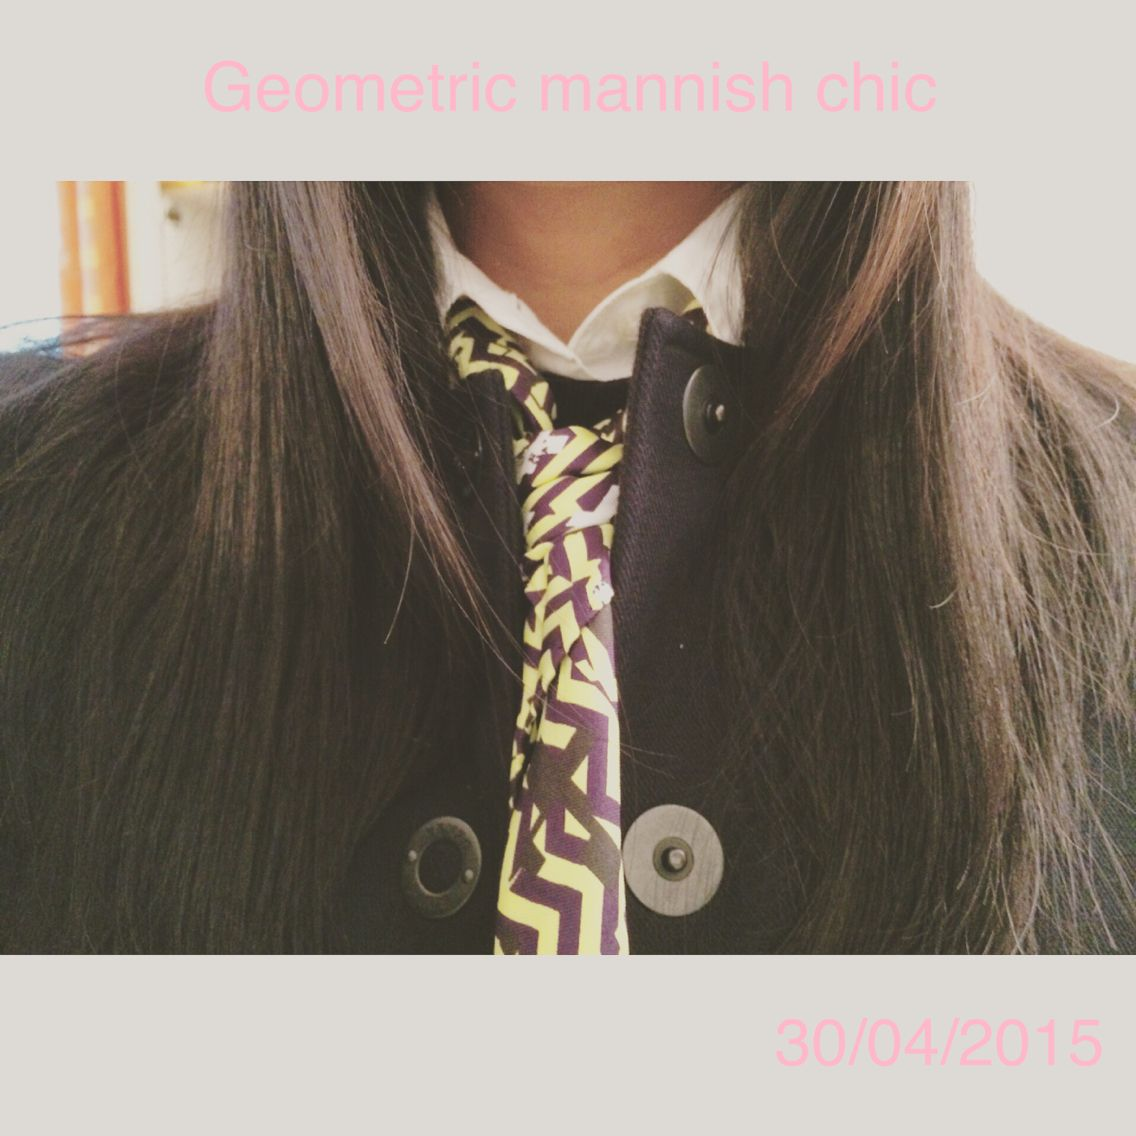 Geometric mannish chic